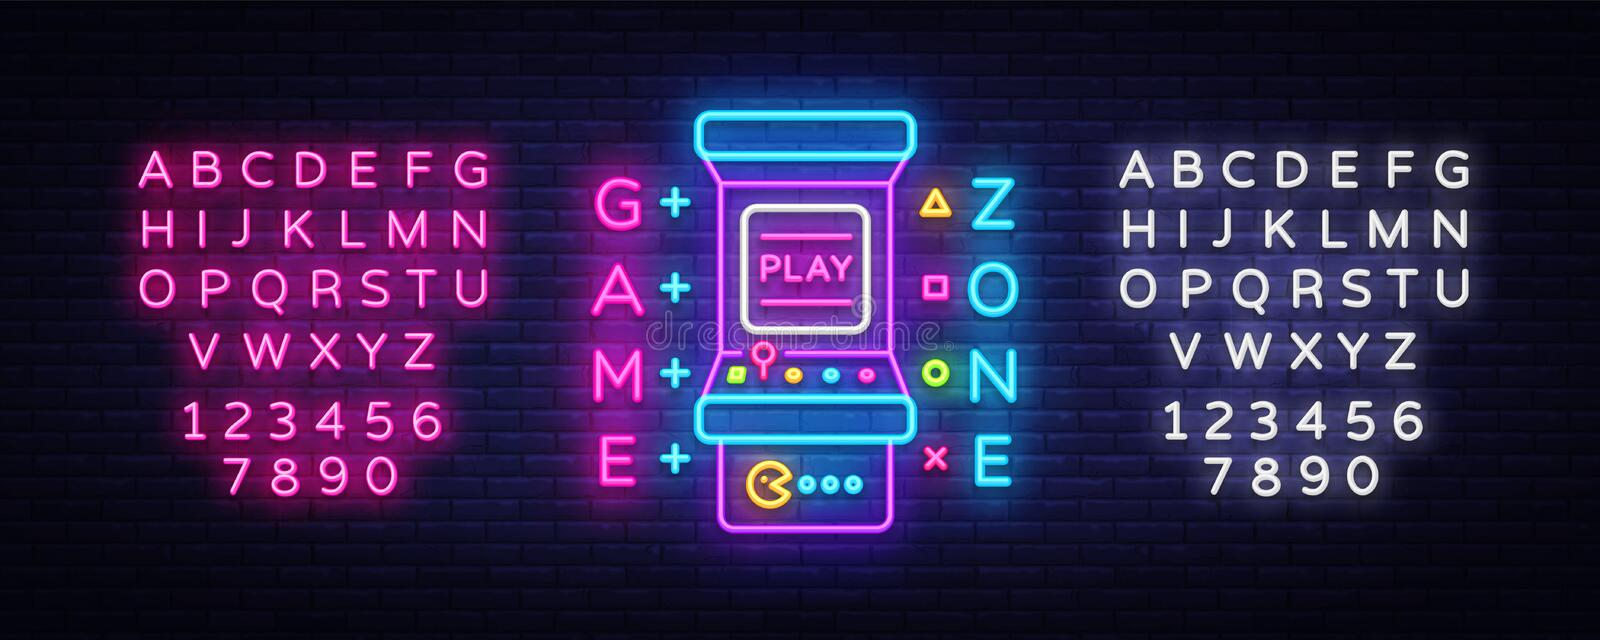 Game Zone Logo Vector Neon. Game Room neon sign board, design template, Gaming industry advertising, Gaming Machine stock illustration